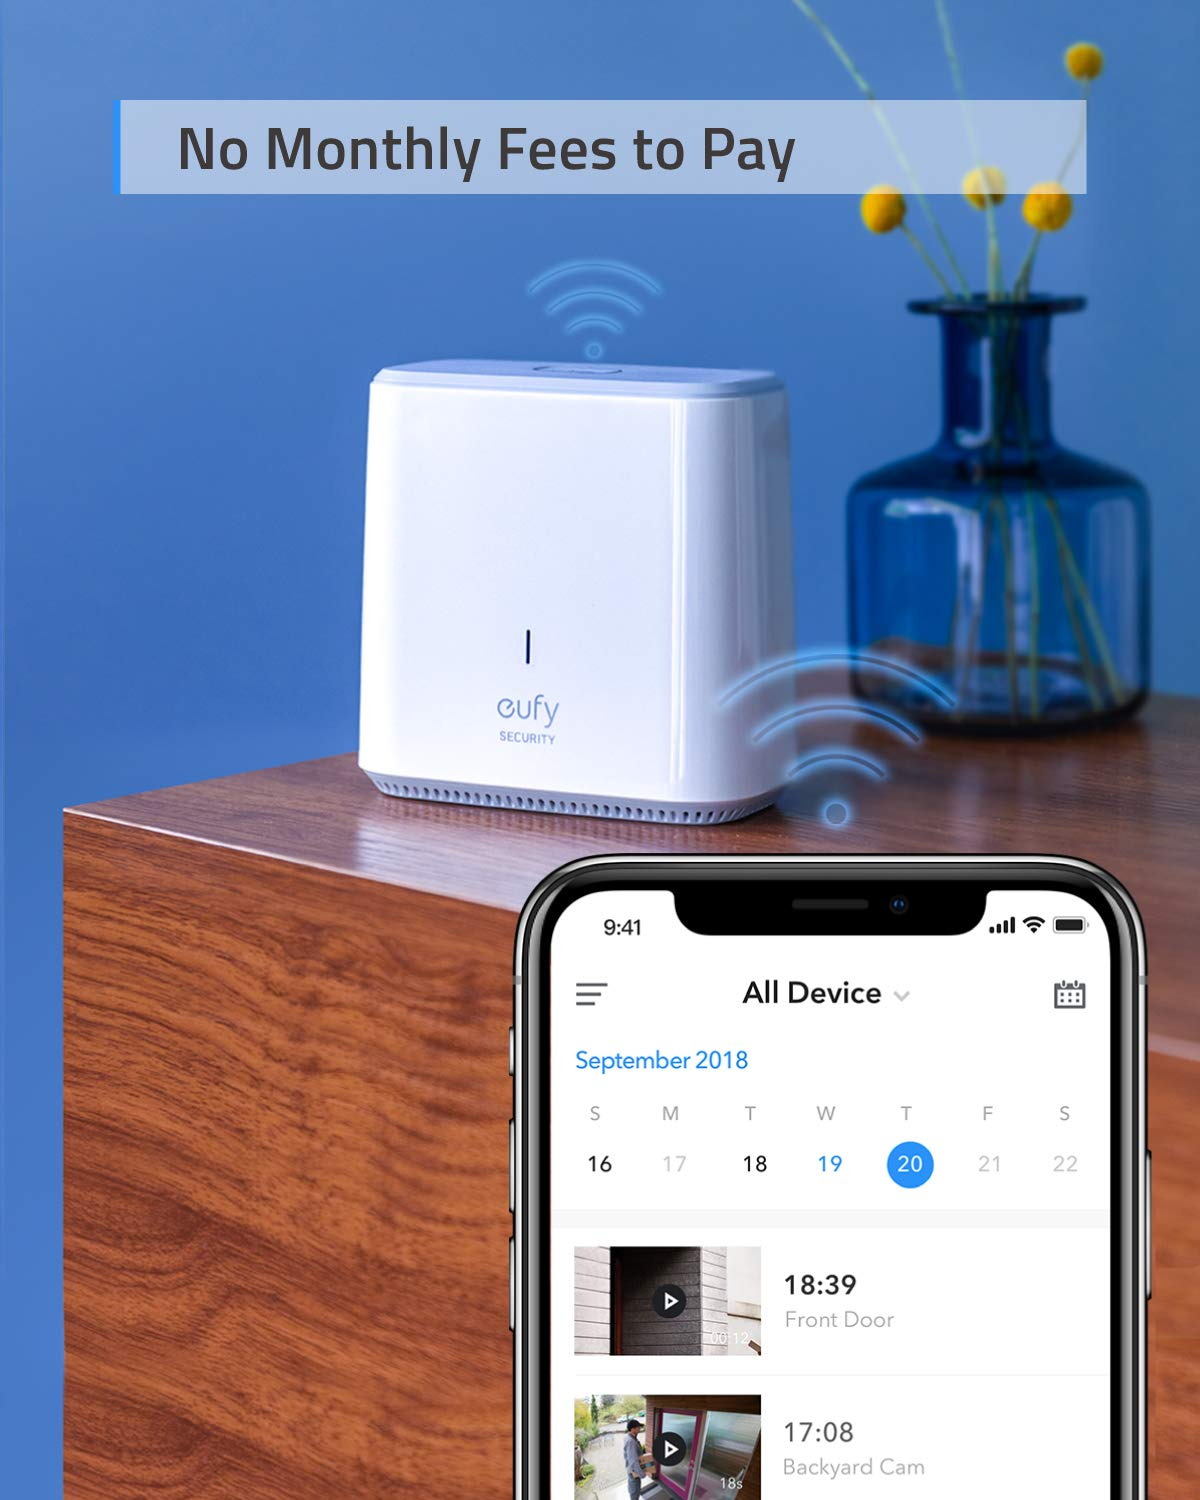 Wireless Home Security Camera System, eufy Security eufyCam E 365-Day Battery Life, 1080p HD, IP65 Weatherproof, Night Vision, Compatible with Amazon Alexa, 2-Cam Kit, No Monthly Fee by Eufy (Image #5)